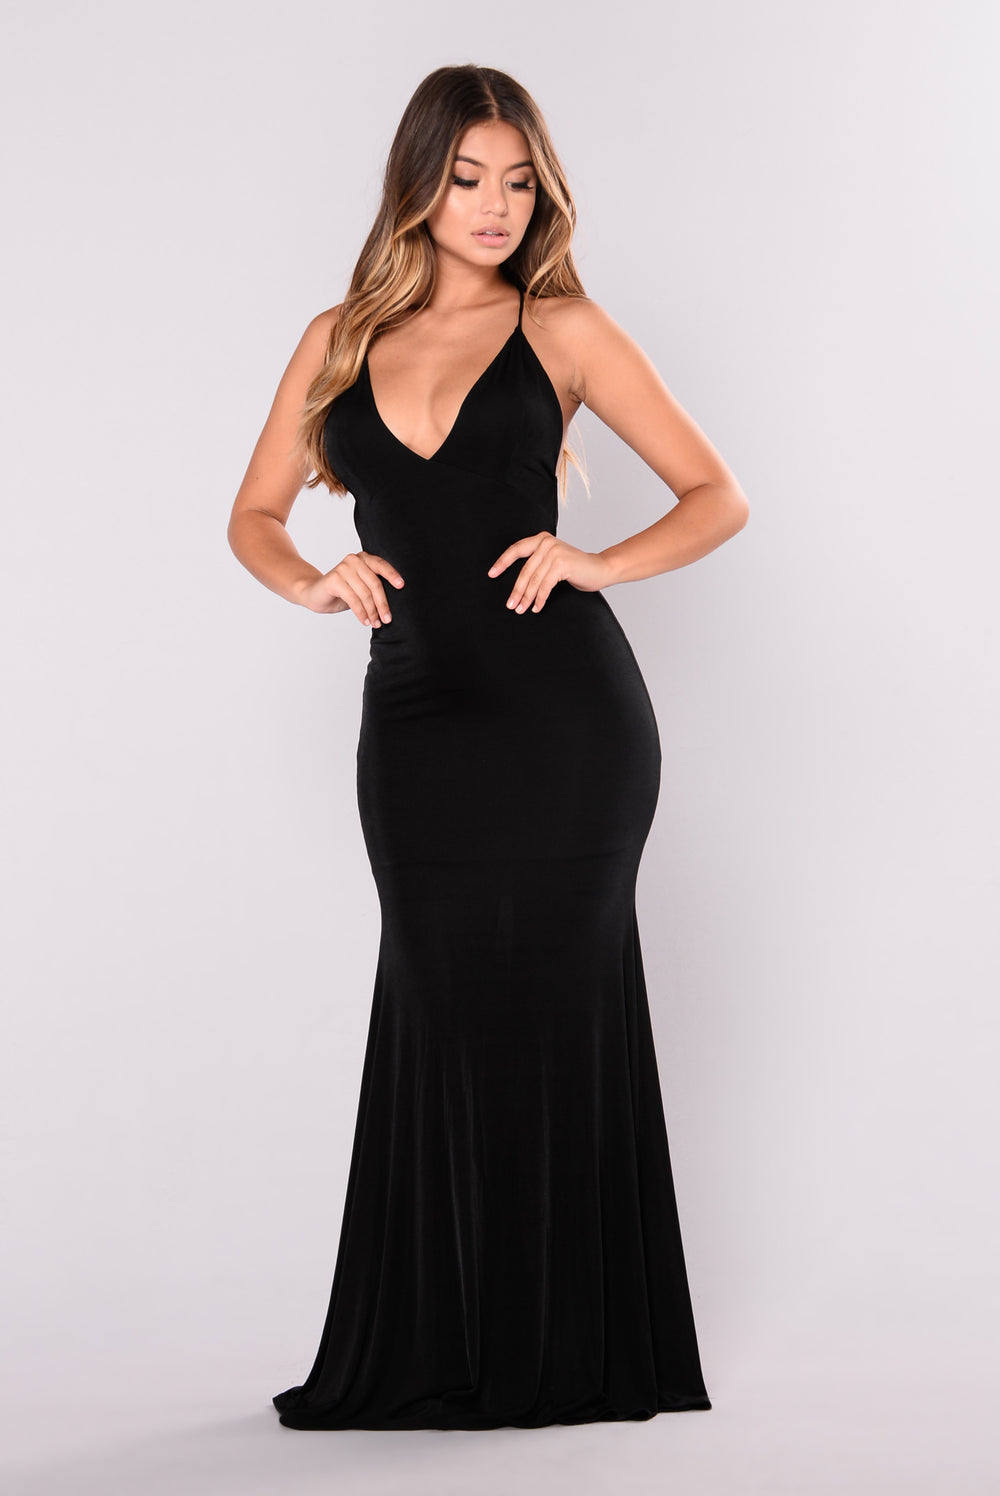 Dress Me Up Max Dress - Black